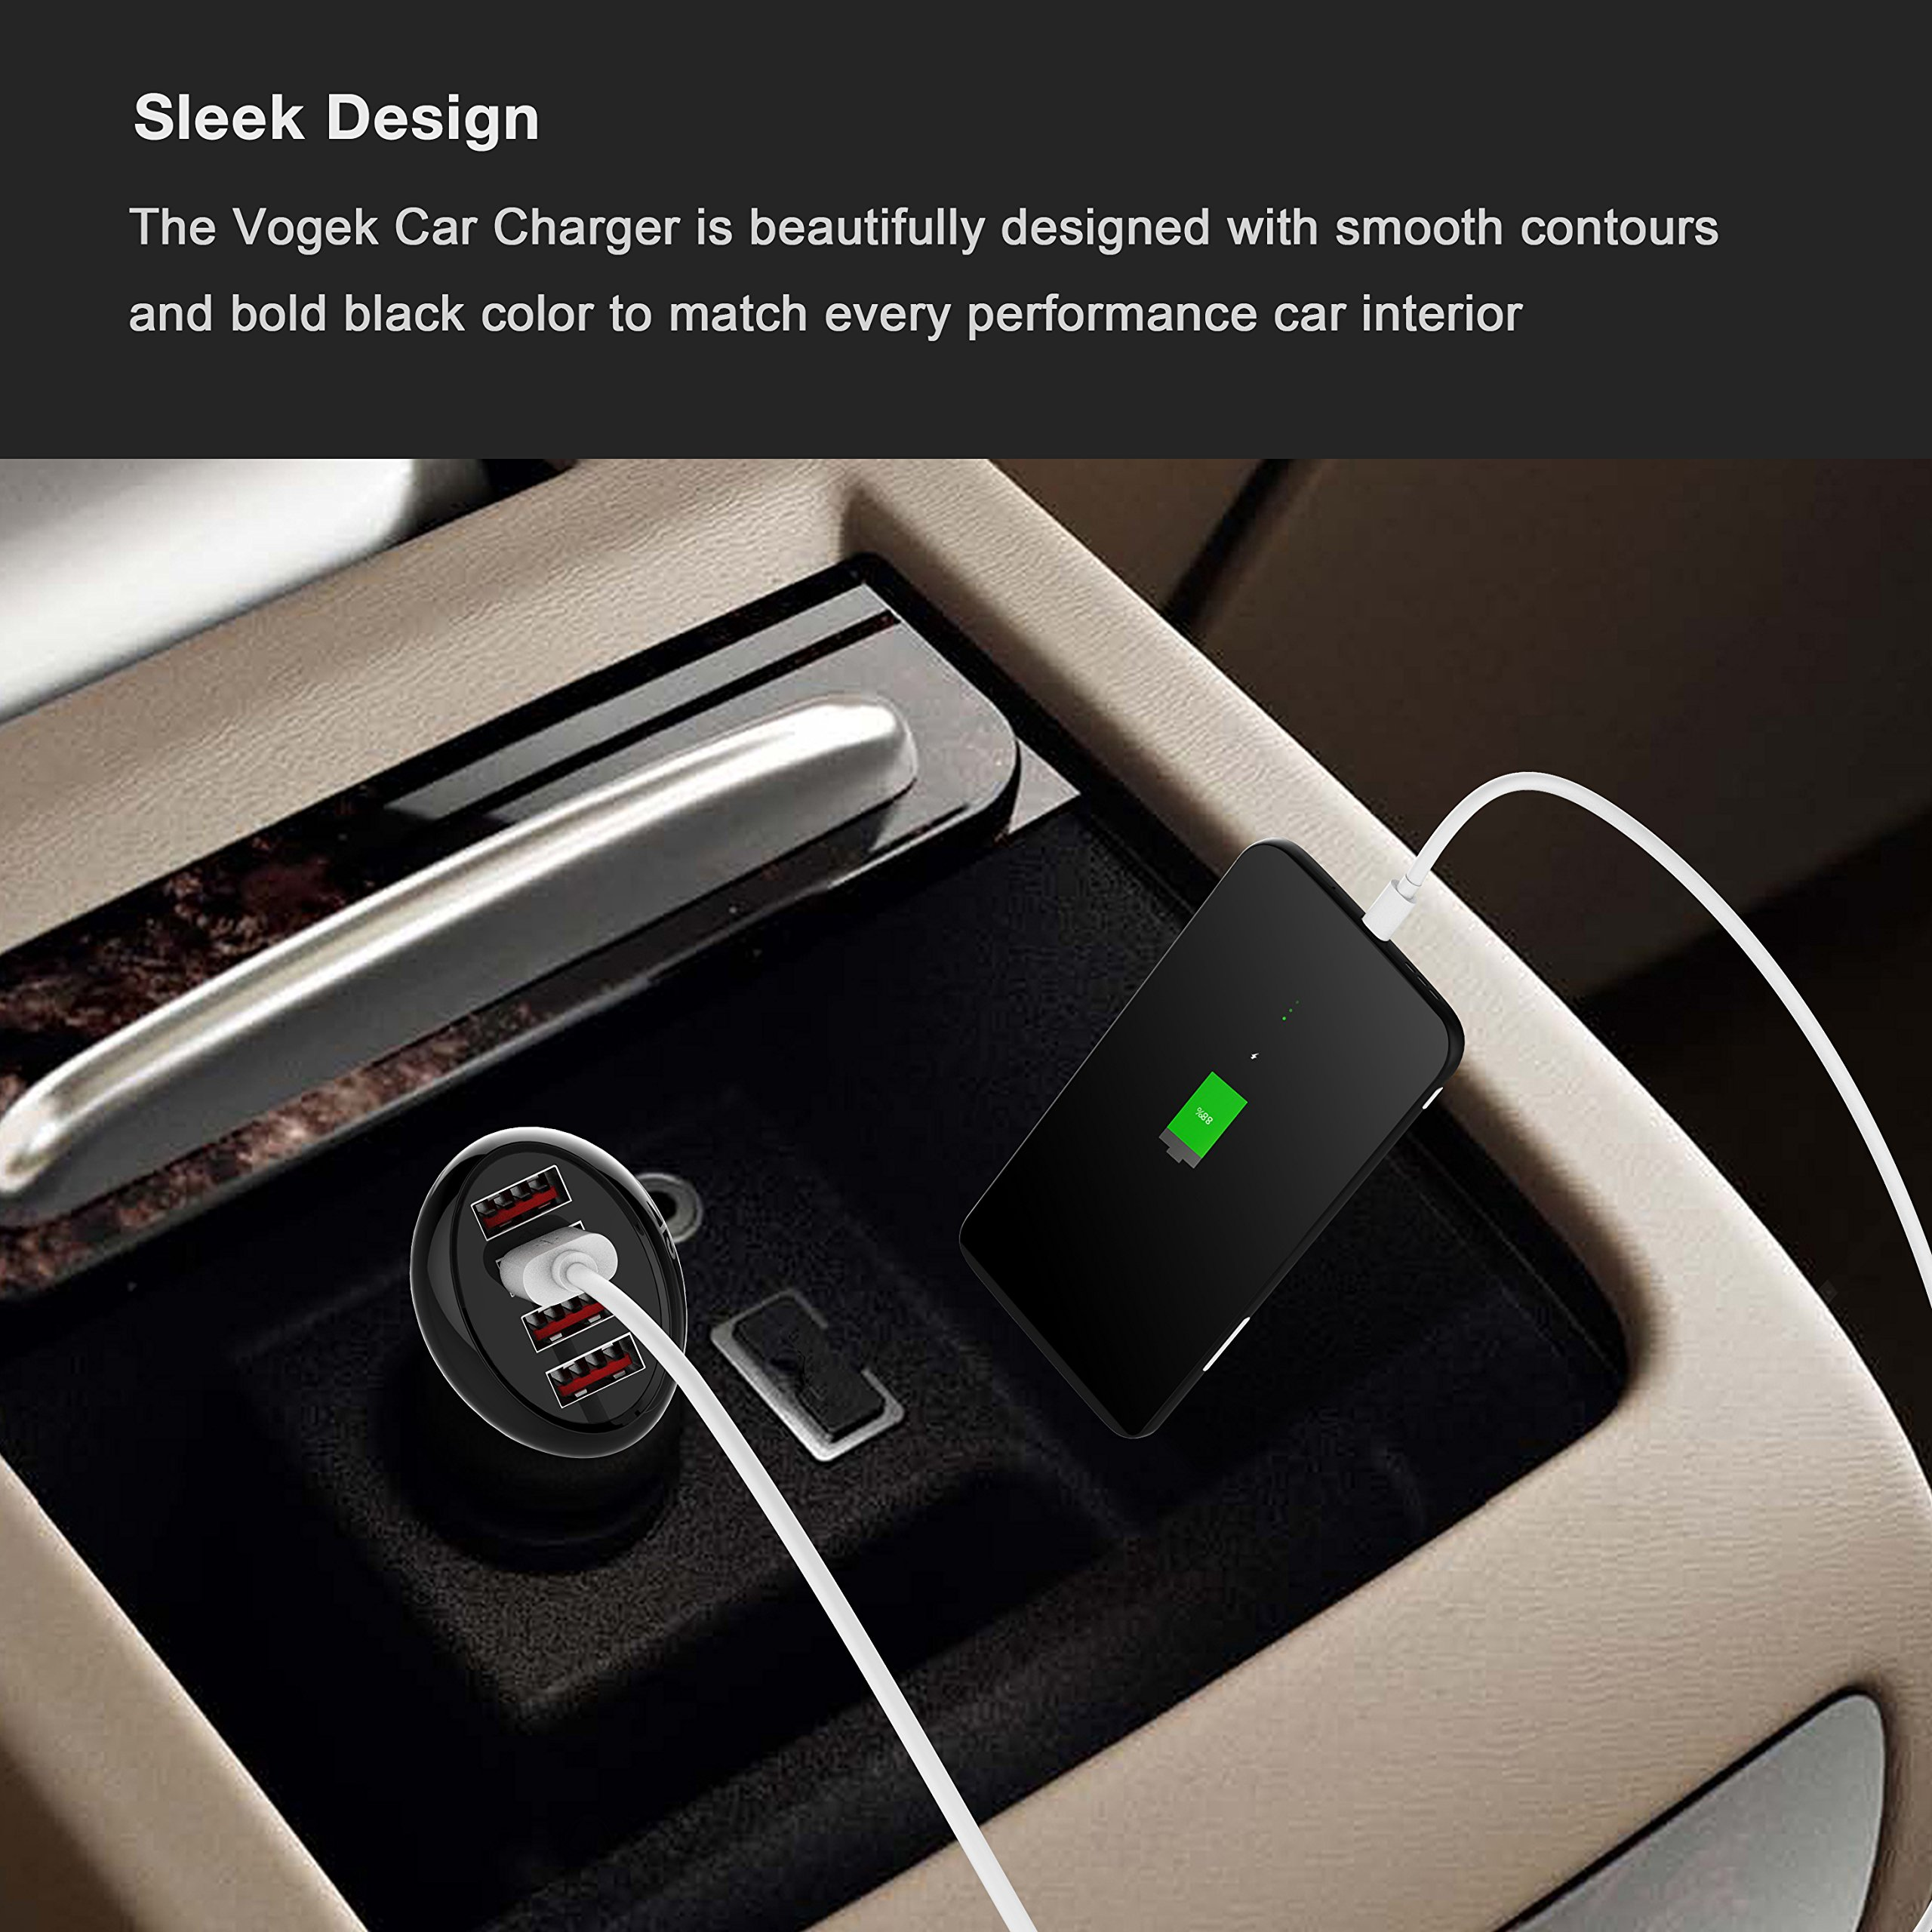 Car Charger, Vogek 50W 10A 4-Port USB Car Charger with Smart Identification for iPhone X, 8, 7 / 6s / Plus, iPad Pro/Air 2 / mini, Galaxy S8 /S7 / S6 / Edge/Plus, Note 5/4 - Black by Vogek (Image #6)